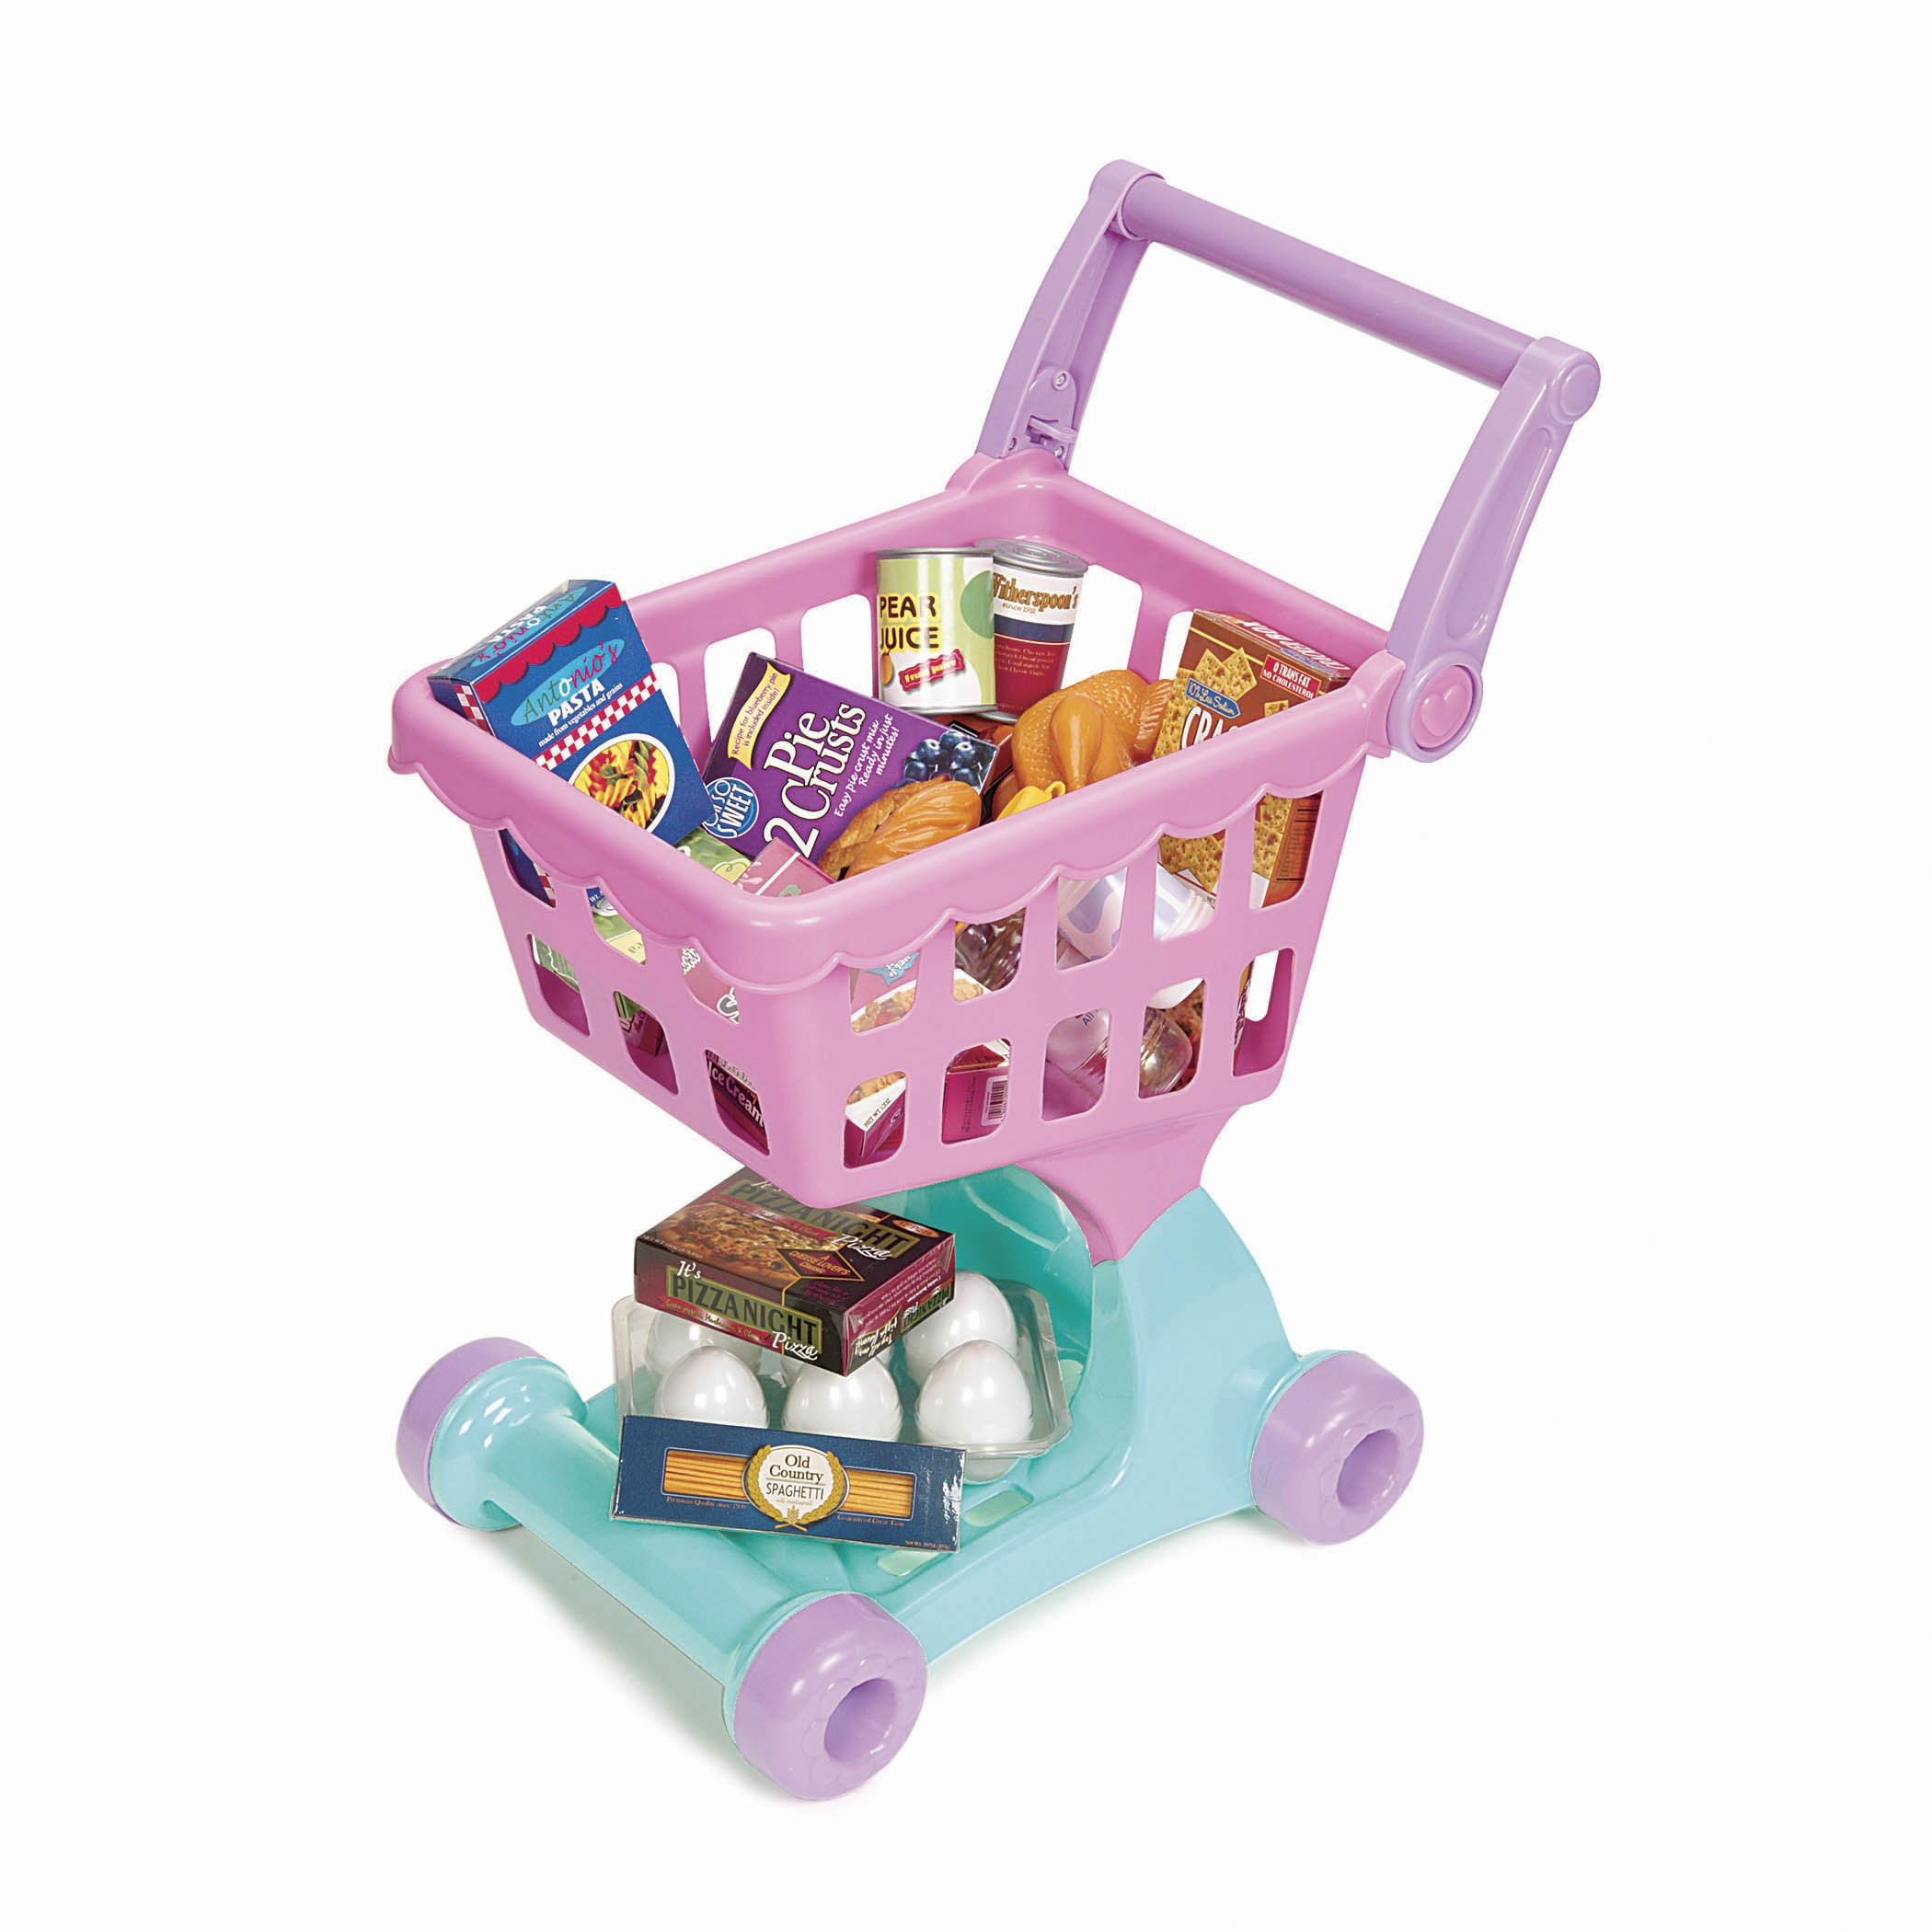 Play Circle by Battat - Shopping Day Grocery Cart - 30-piece Toy Shopping Cart and Pretend Food Playset - Grocery, Kitchen and Food Toys for Toddlers Age 3 Years and Up